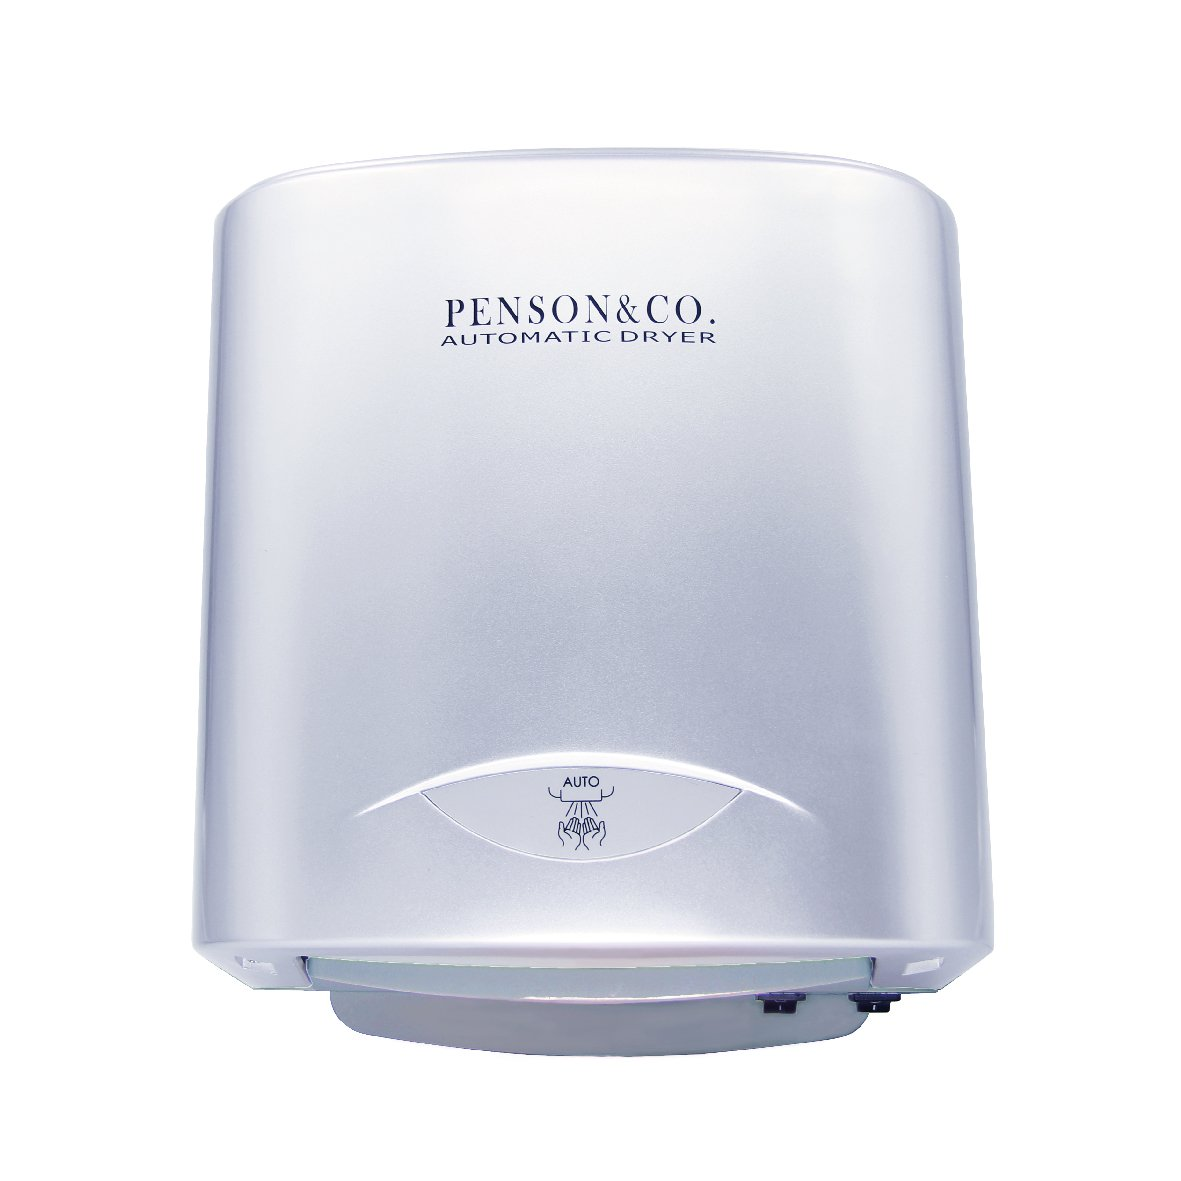 PENSON & CO. Super Quiet Automatic Electric Hand Dryer Commercial High Speed 95m/s, Silver, Instant Heat & Dry